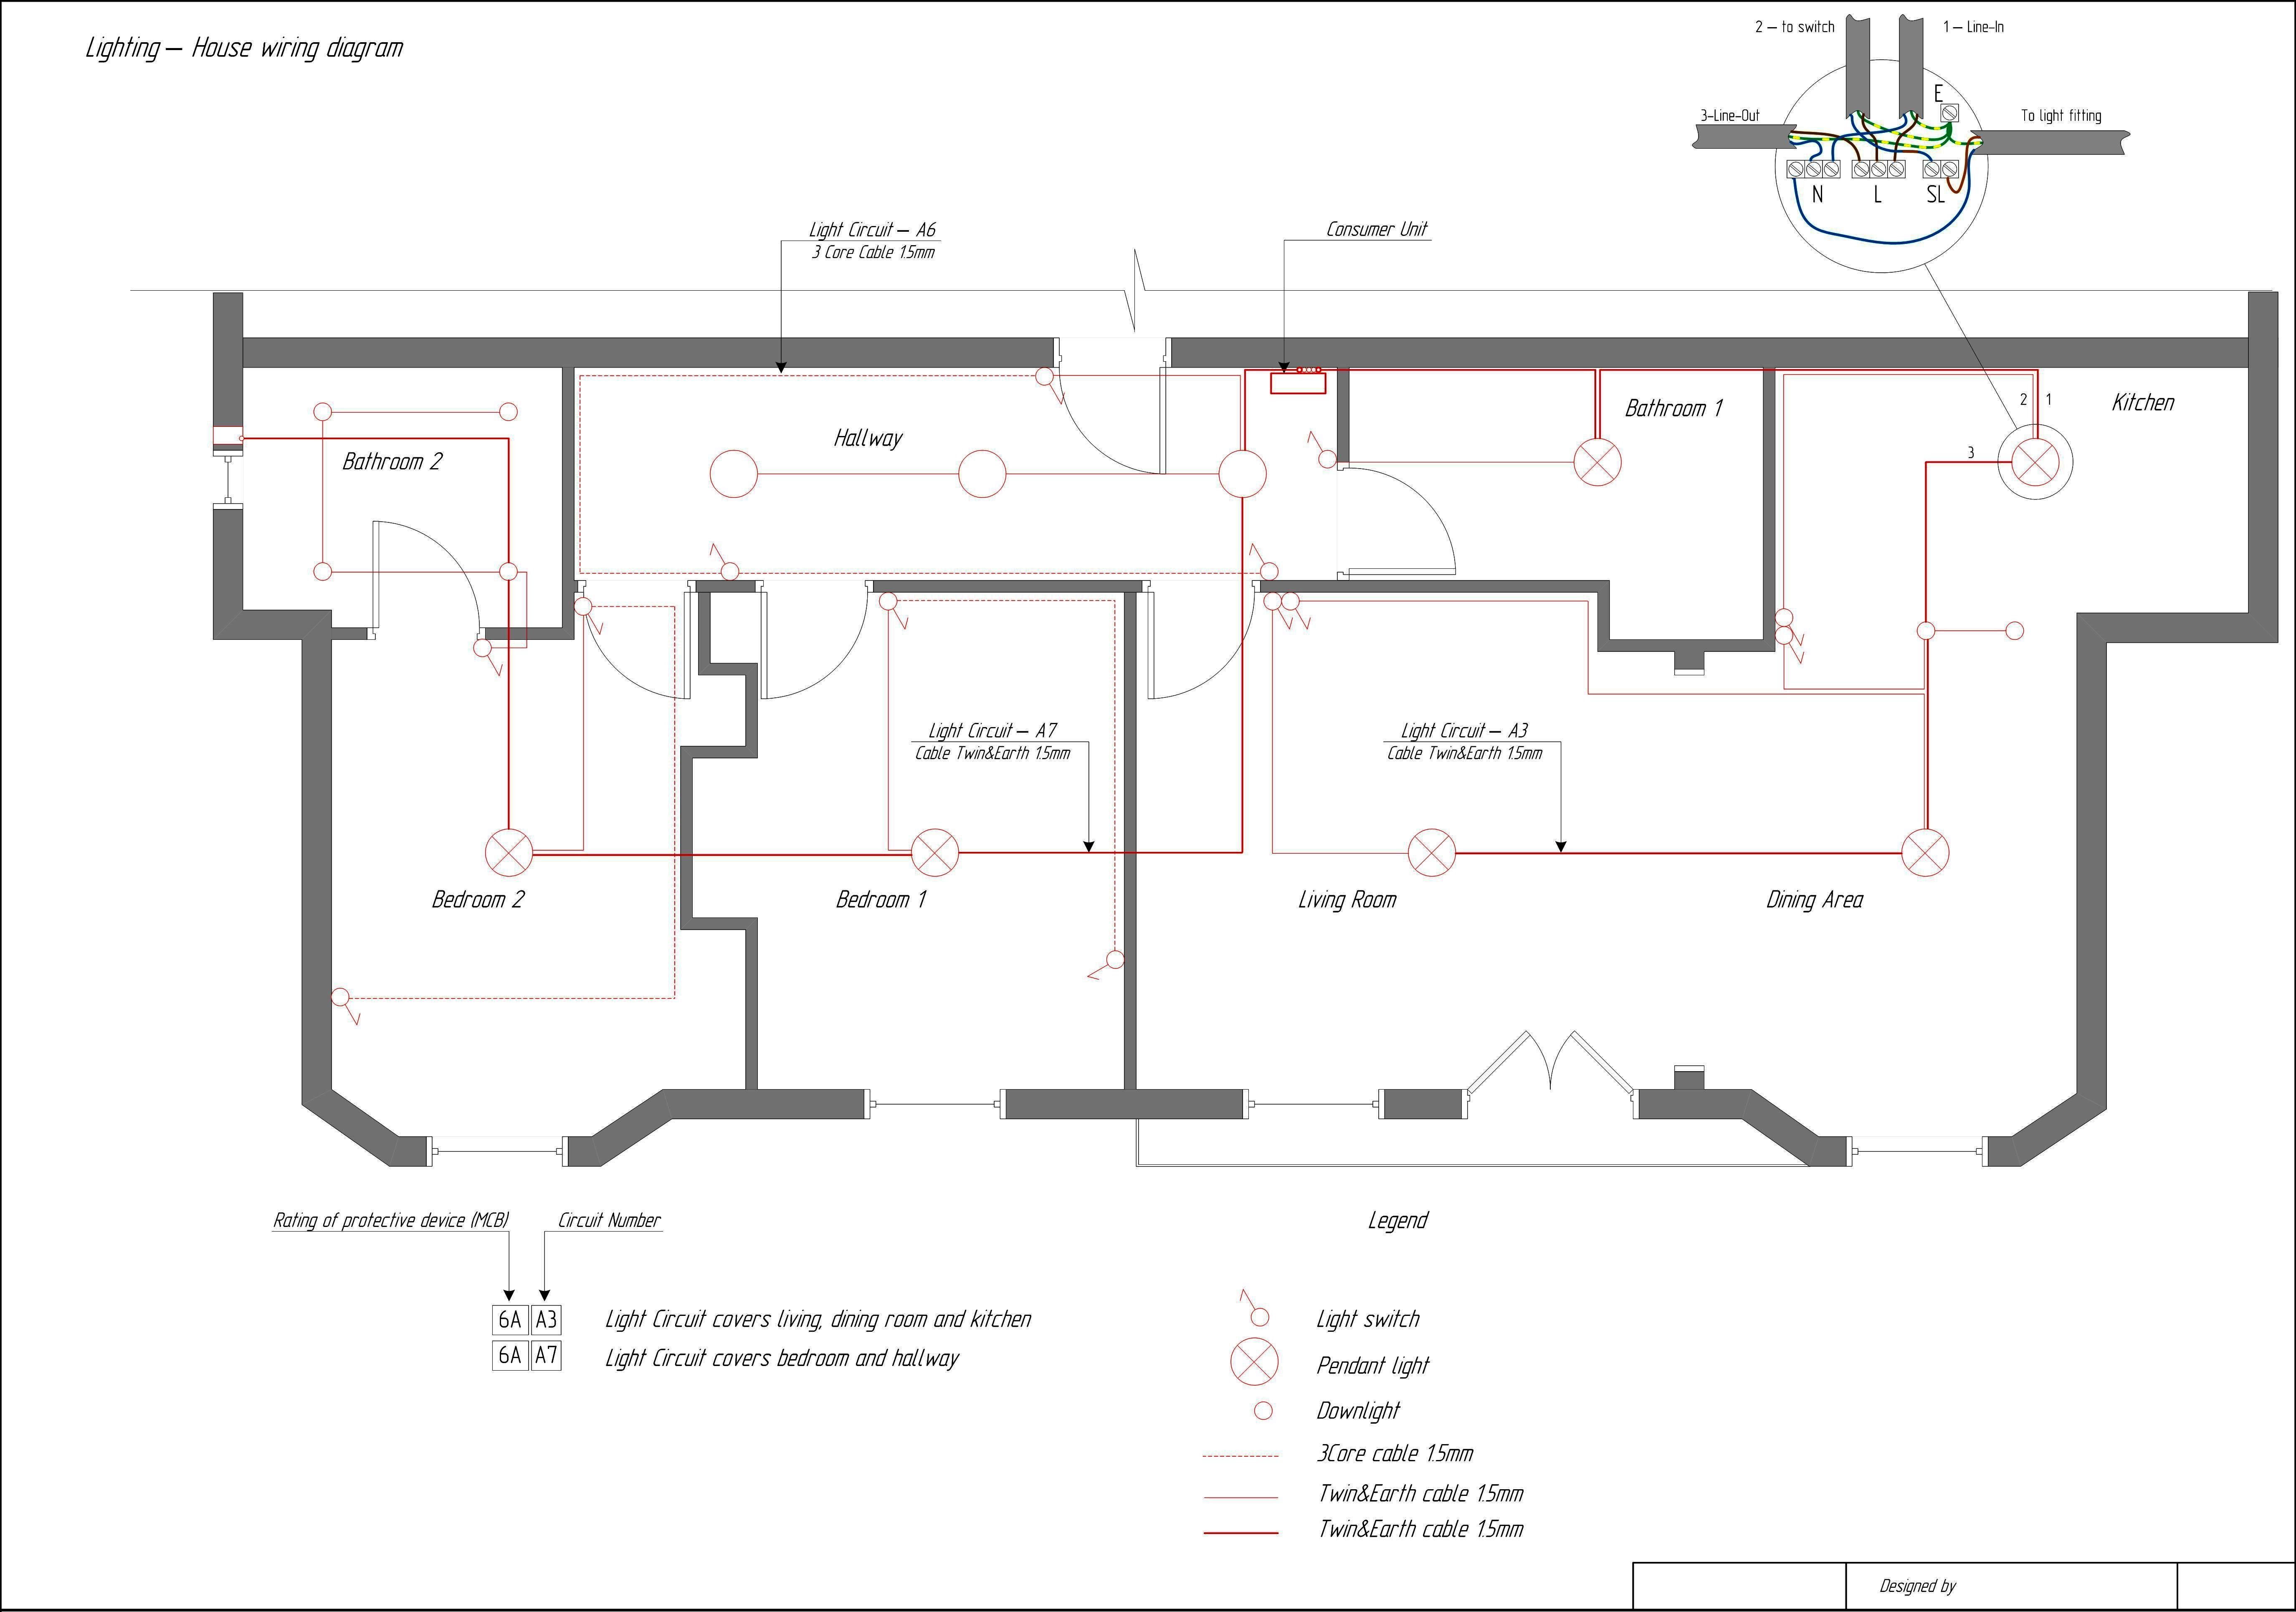 Typical House Wiring Diagrams - Product Wiring Diagrams •